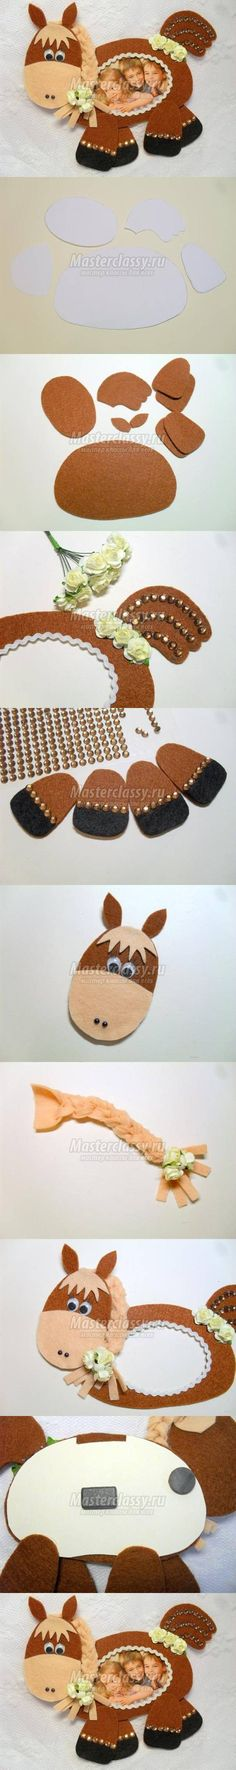 DIY Felt Horse Picture Frame DIY Projects | UsefulDIY.com Follow Us on Facebook ==> http://www.facebook.com/UsefulDiy